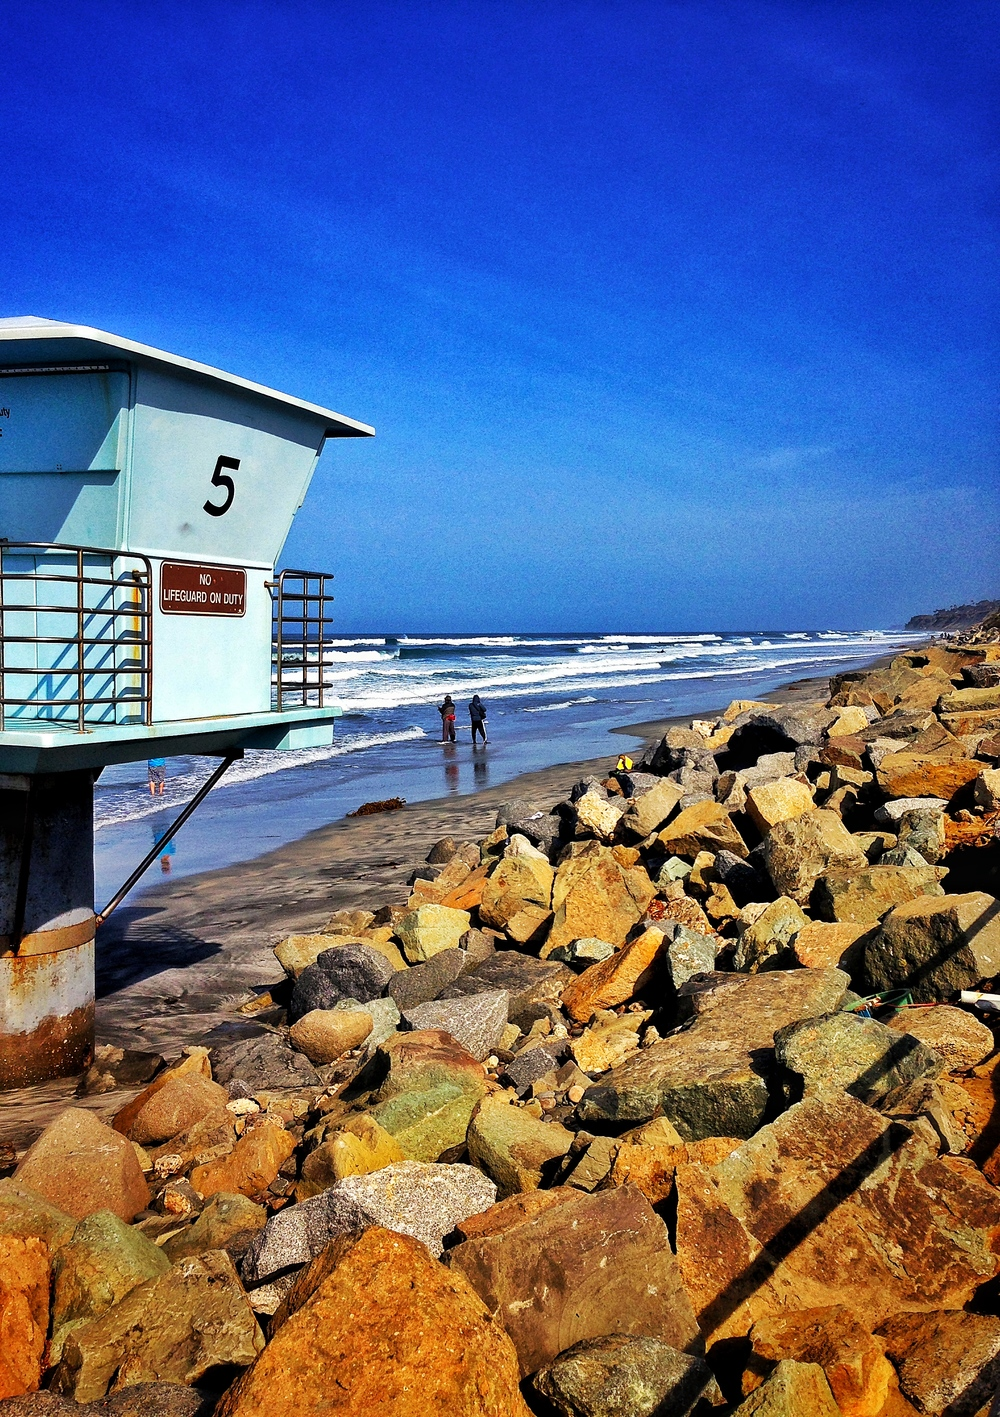 The San Diego coast is a great place to walk, hike, or jog from sunup to sundown.